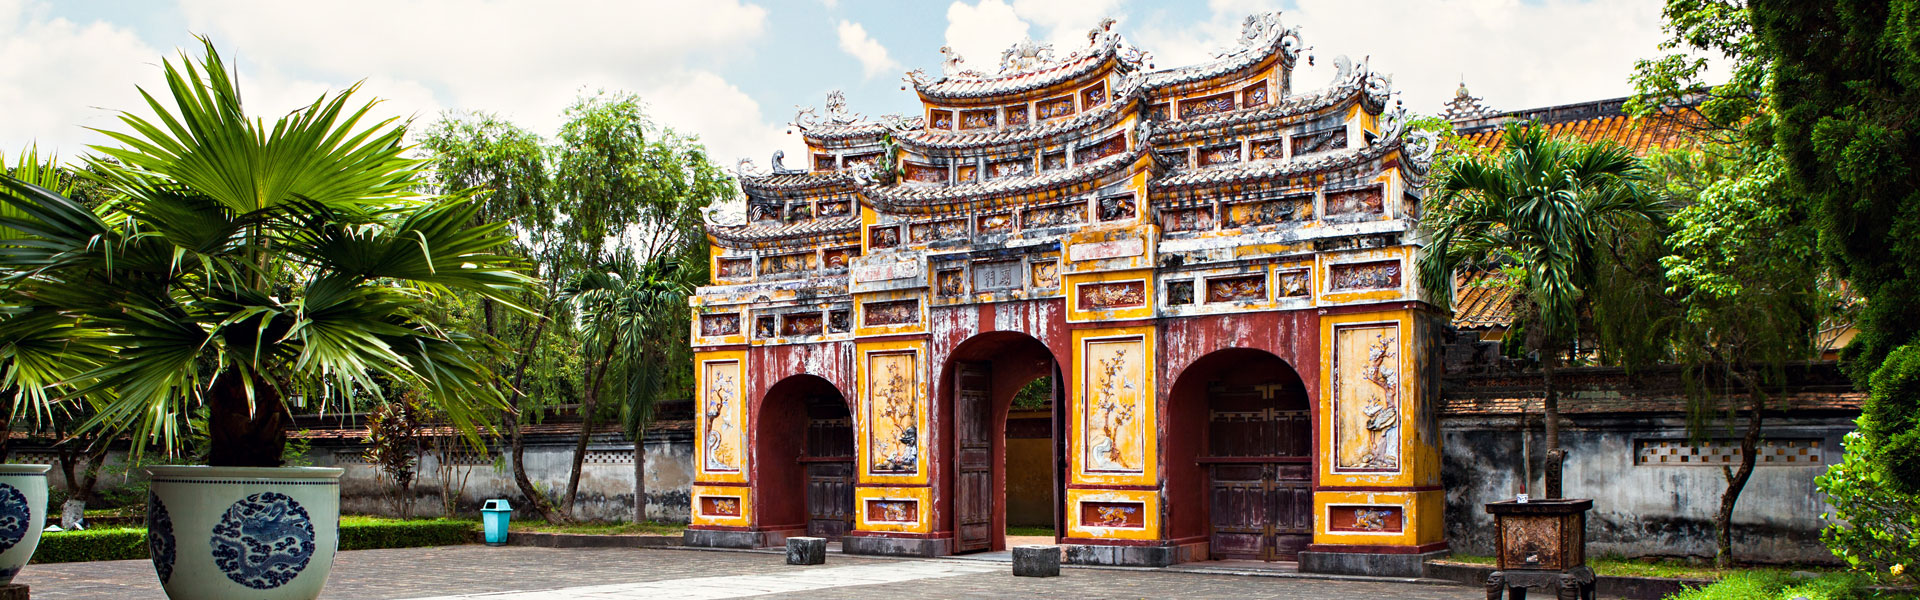 Tombs and Temples of Vietnam | Wendy Wu Tours UK Blog